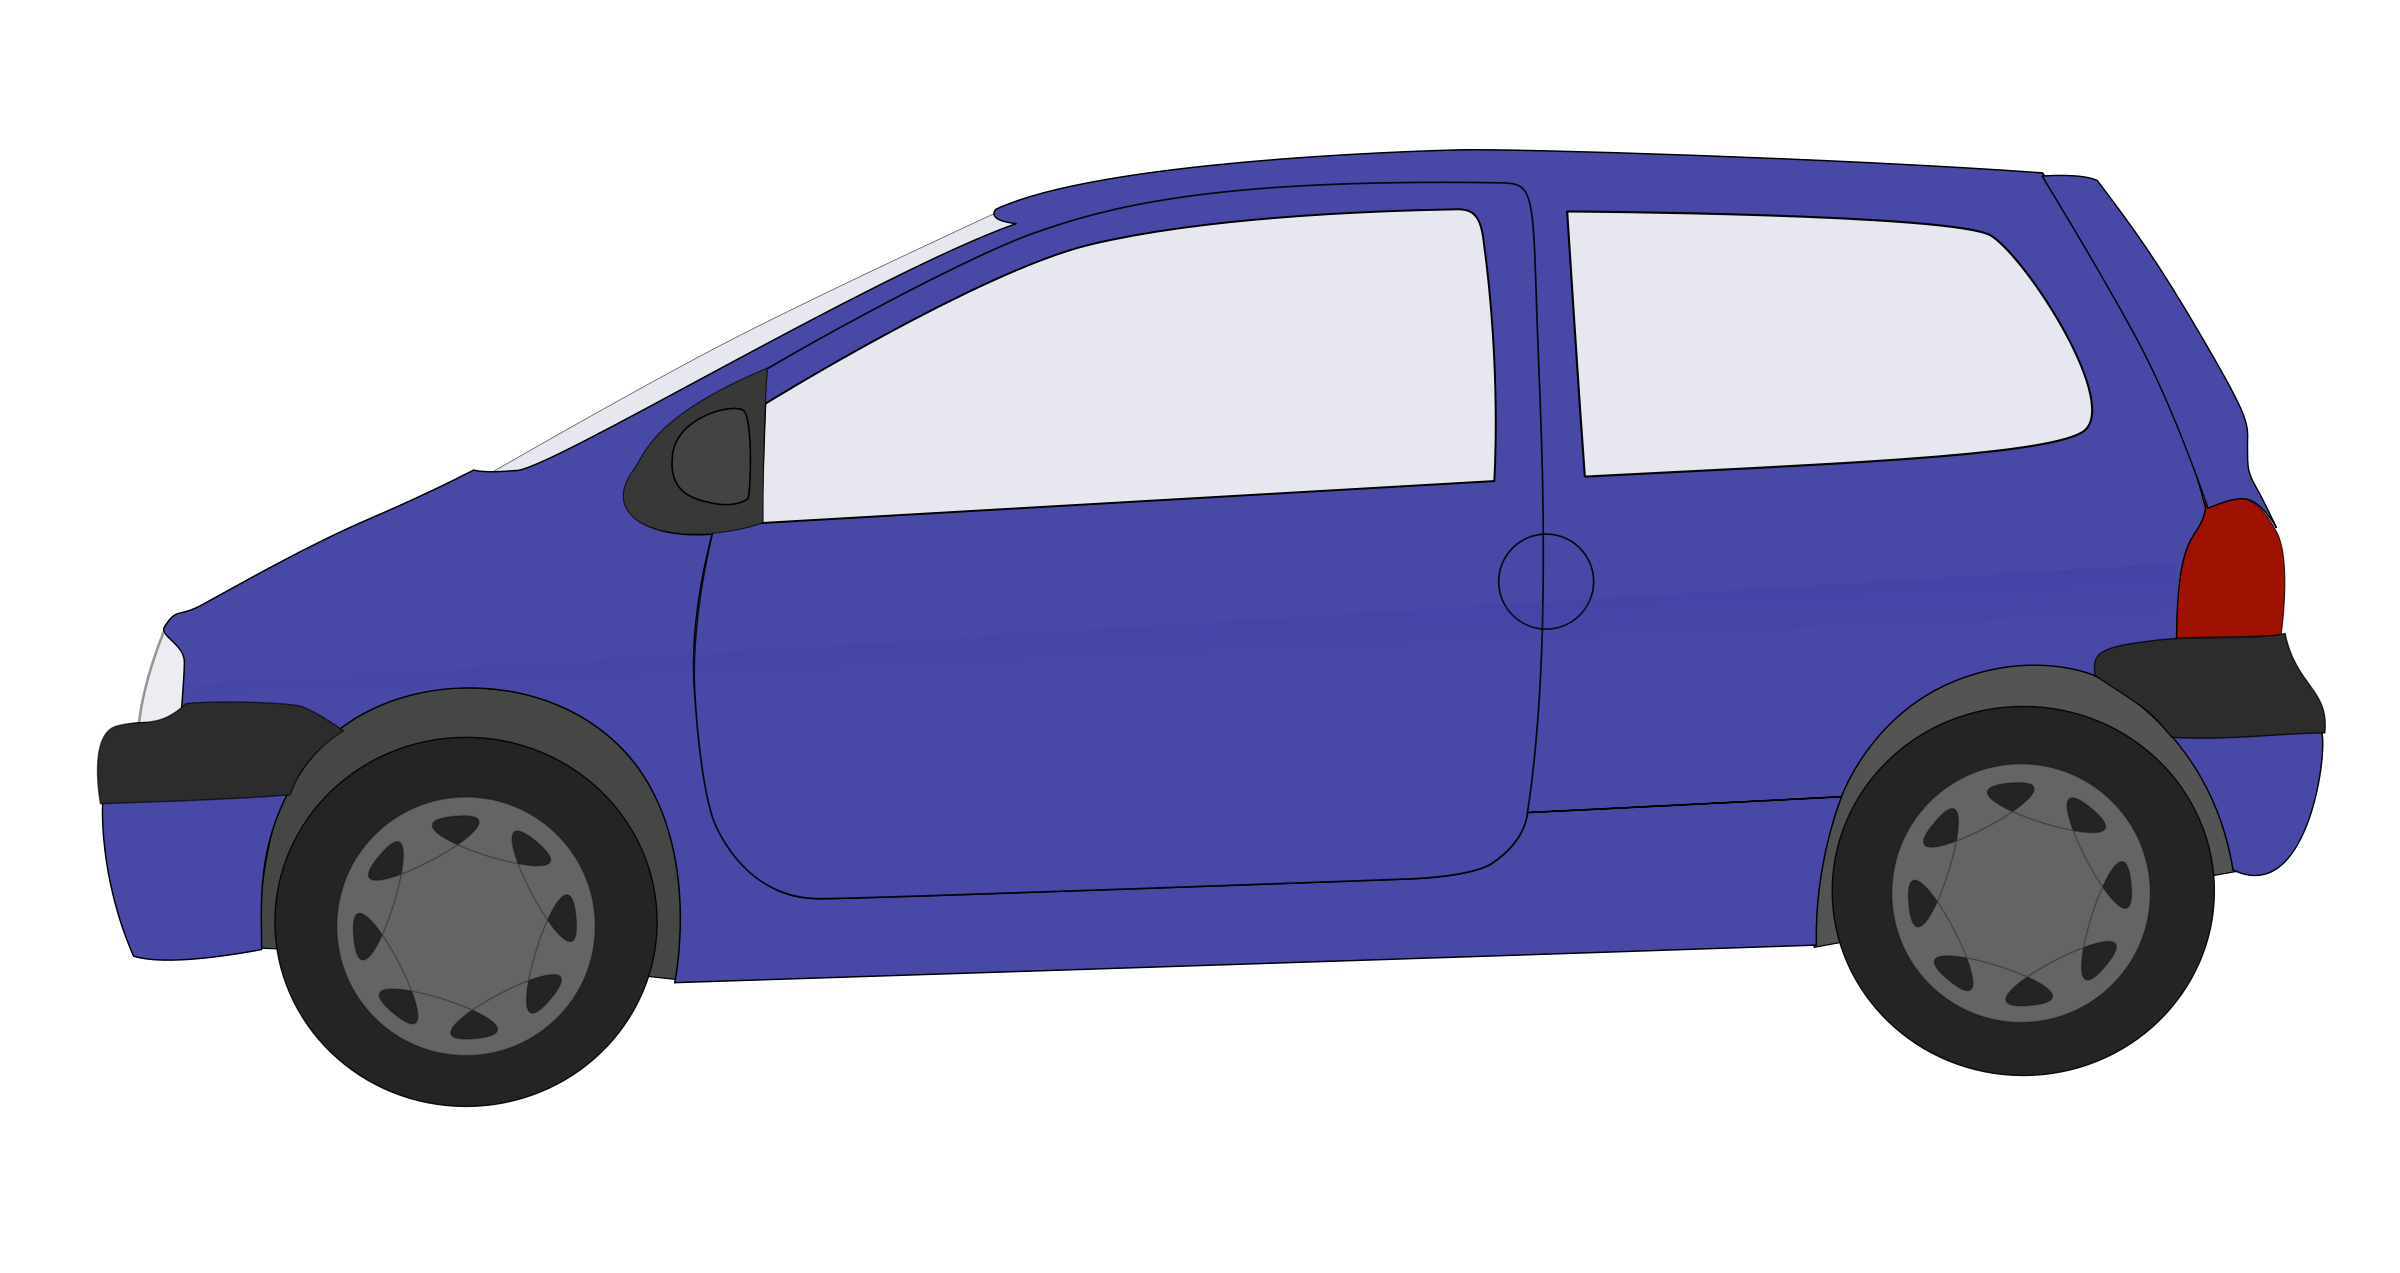 Blue Car clipart side view png  Download Animated Free Car